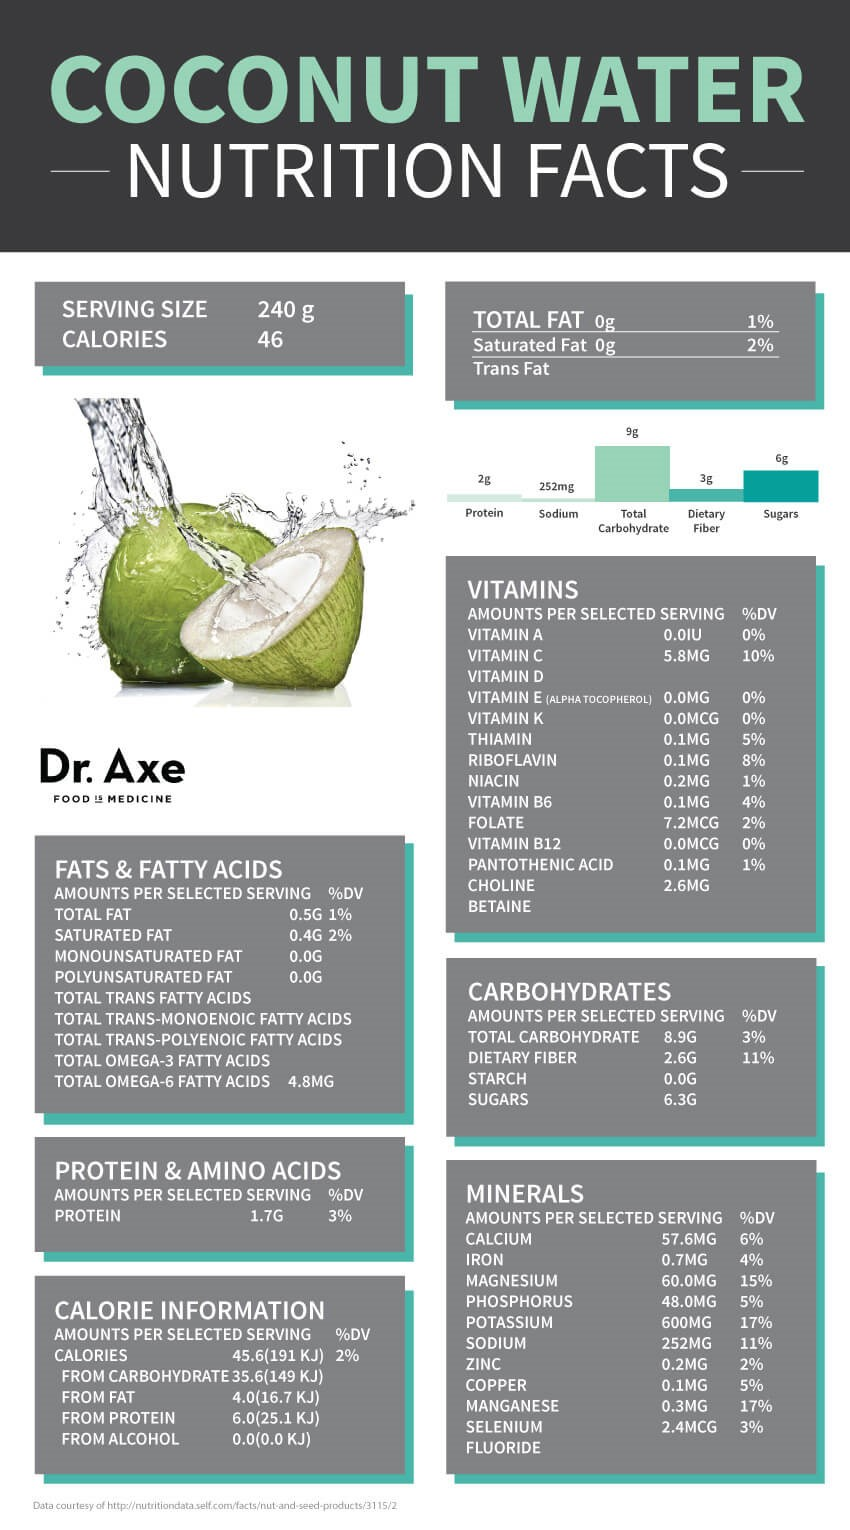 Coconut water nutrition facts SAFIMEX